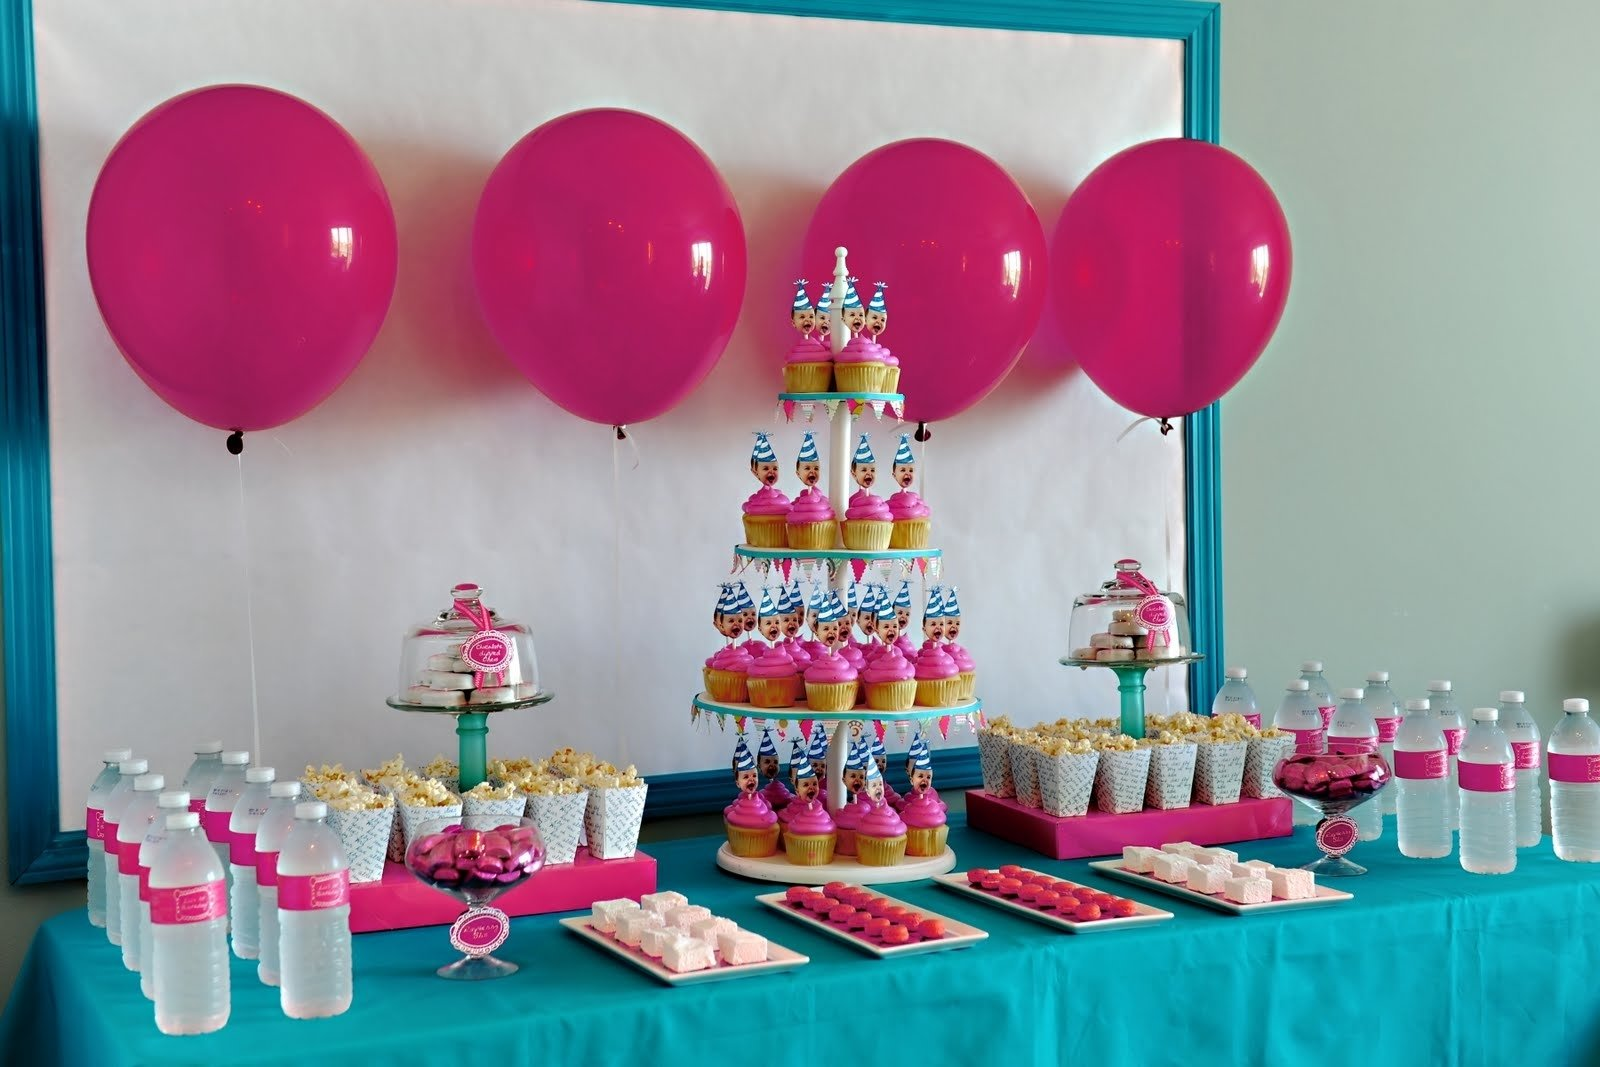 10 Most Recommended 9 Yr Old Birthday Party Ideas elle belle creative one year old in a flash the dessert table 2 2021